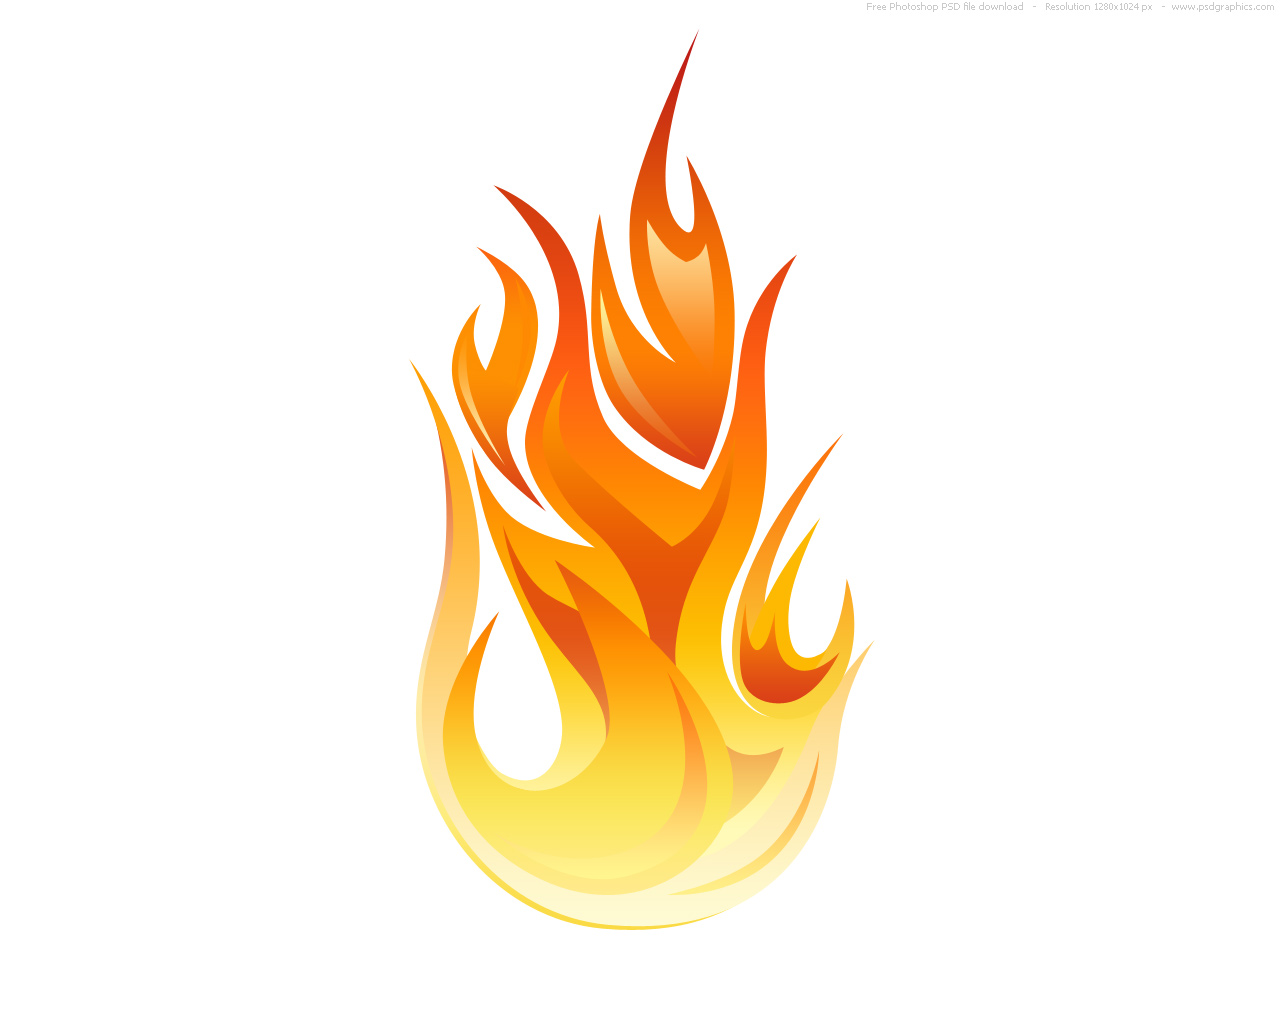 Flames Spirit Holy Spirit Fire Flames is The